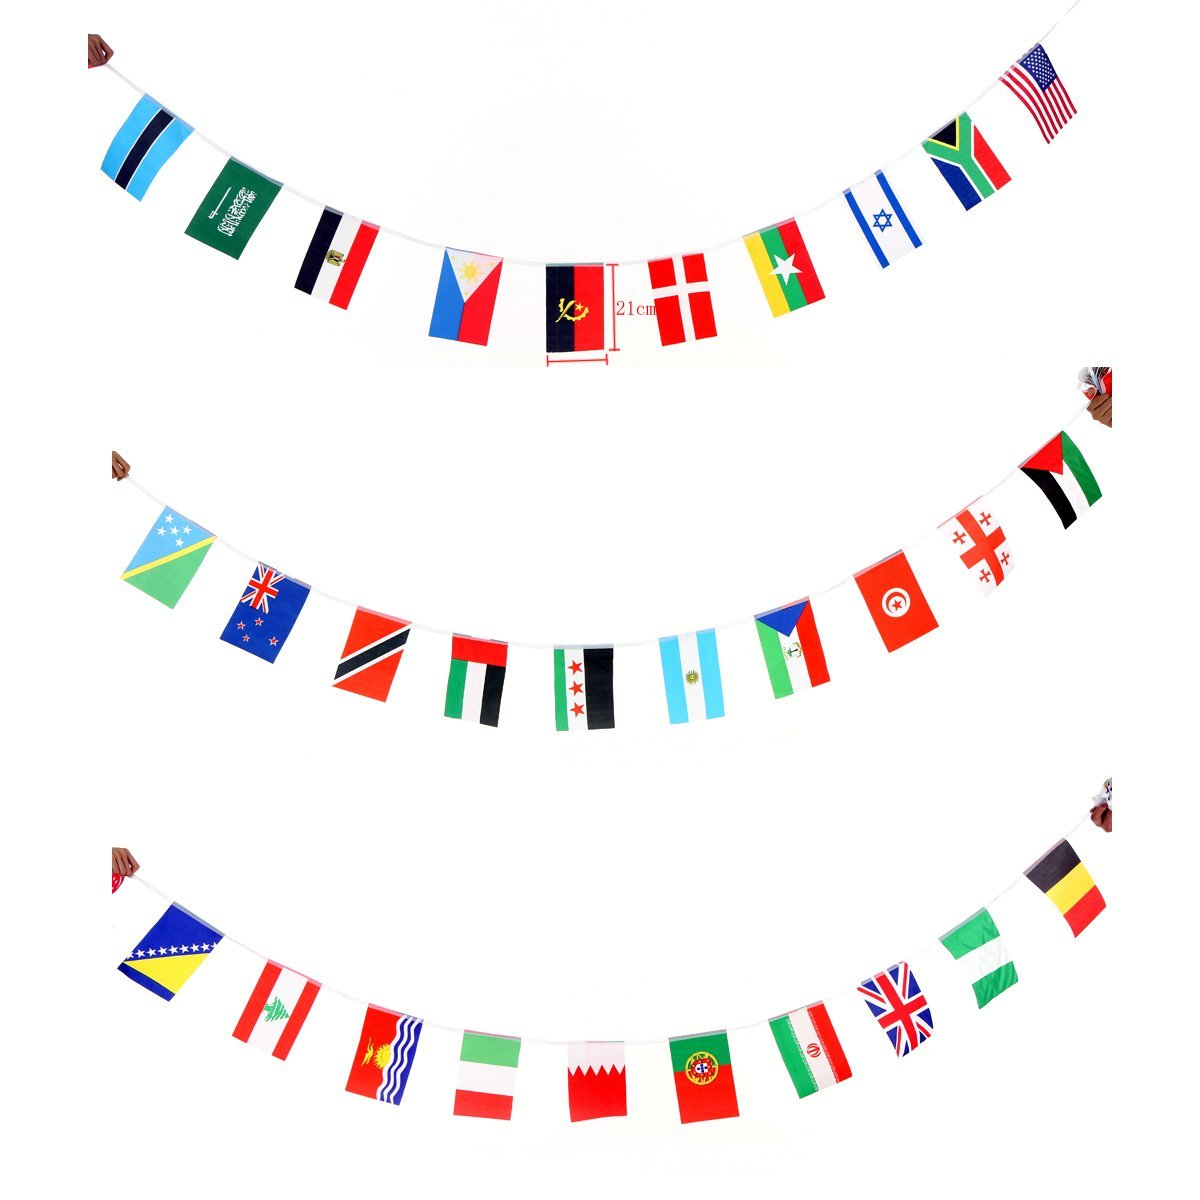 Flyesto 41 Feet World Flag International String Flag Banners 50 Country Hanging Flags Pennants For 2016 Olympic Games Sports Celebration Party Events Bar Decorations